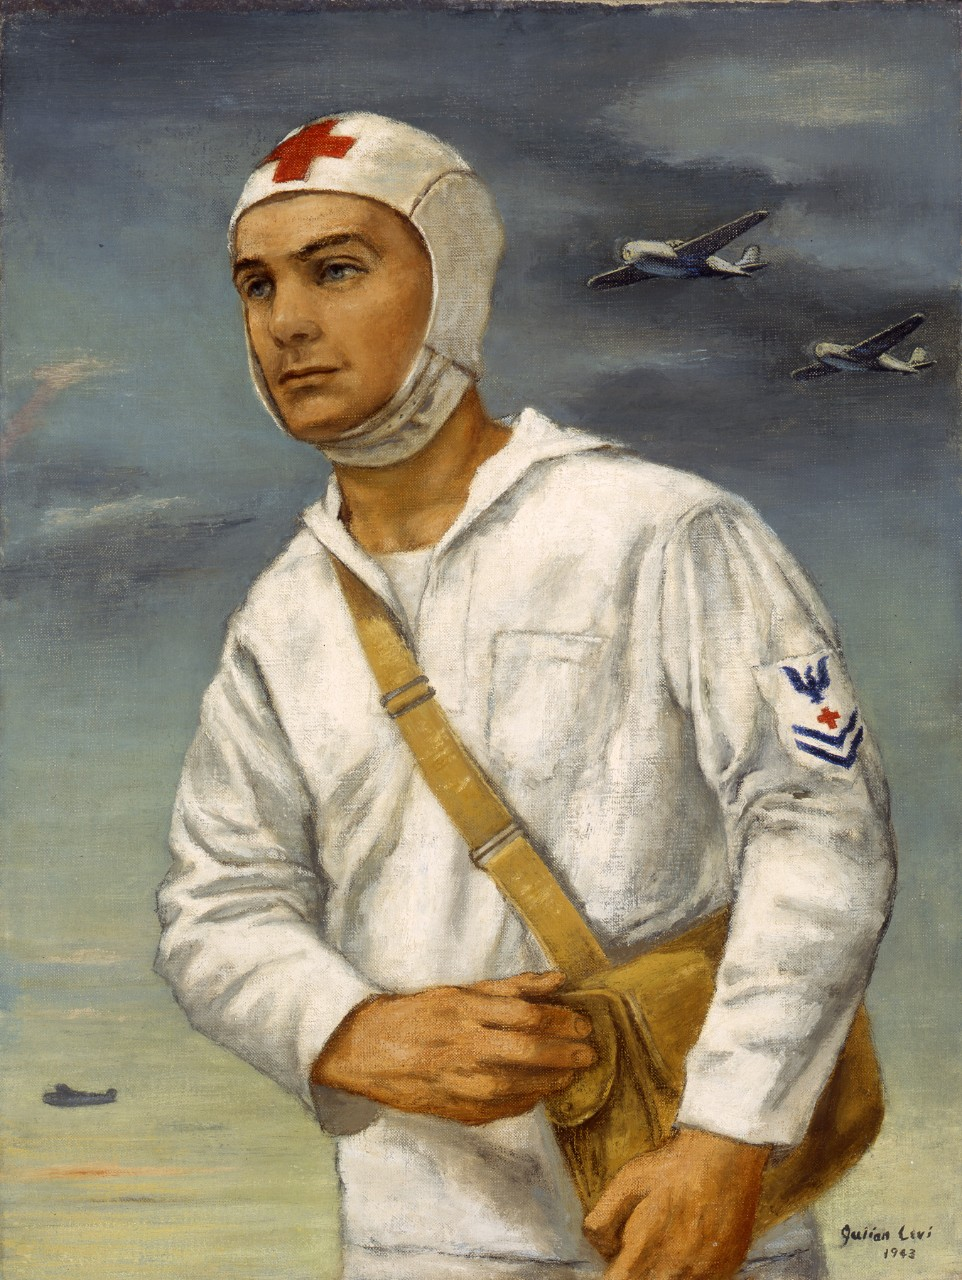 A portrait of a hospital corpsman on an aircraft carrier